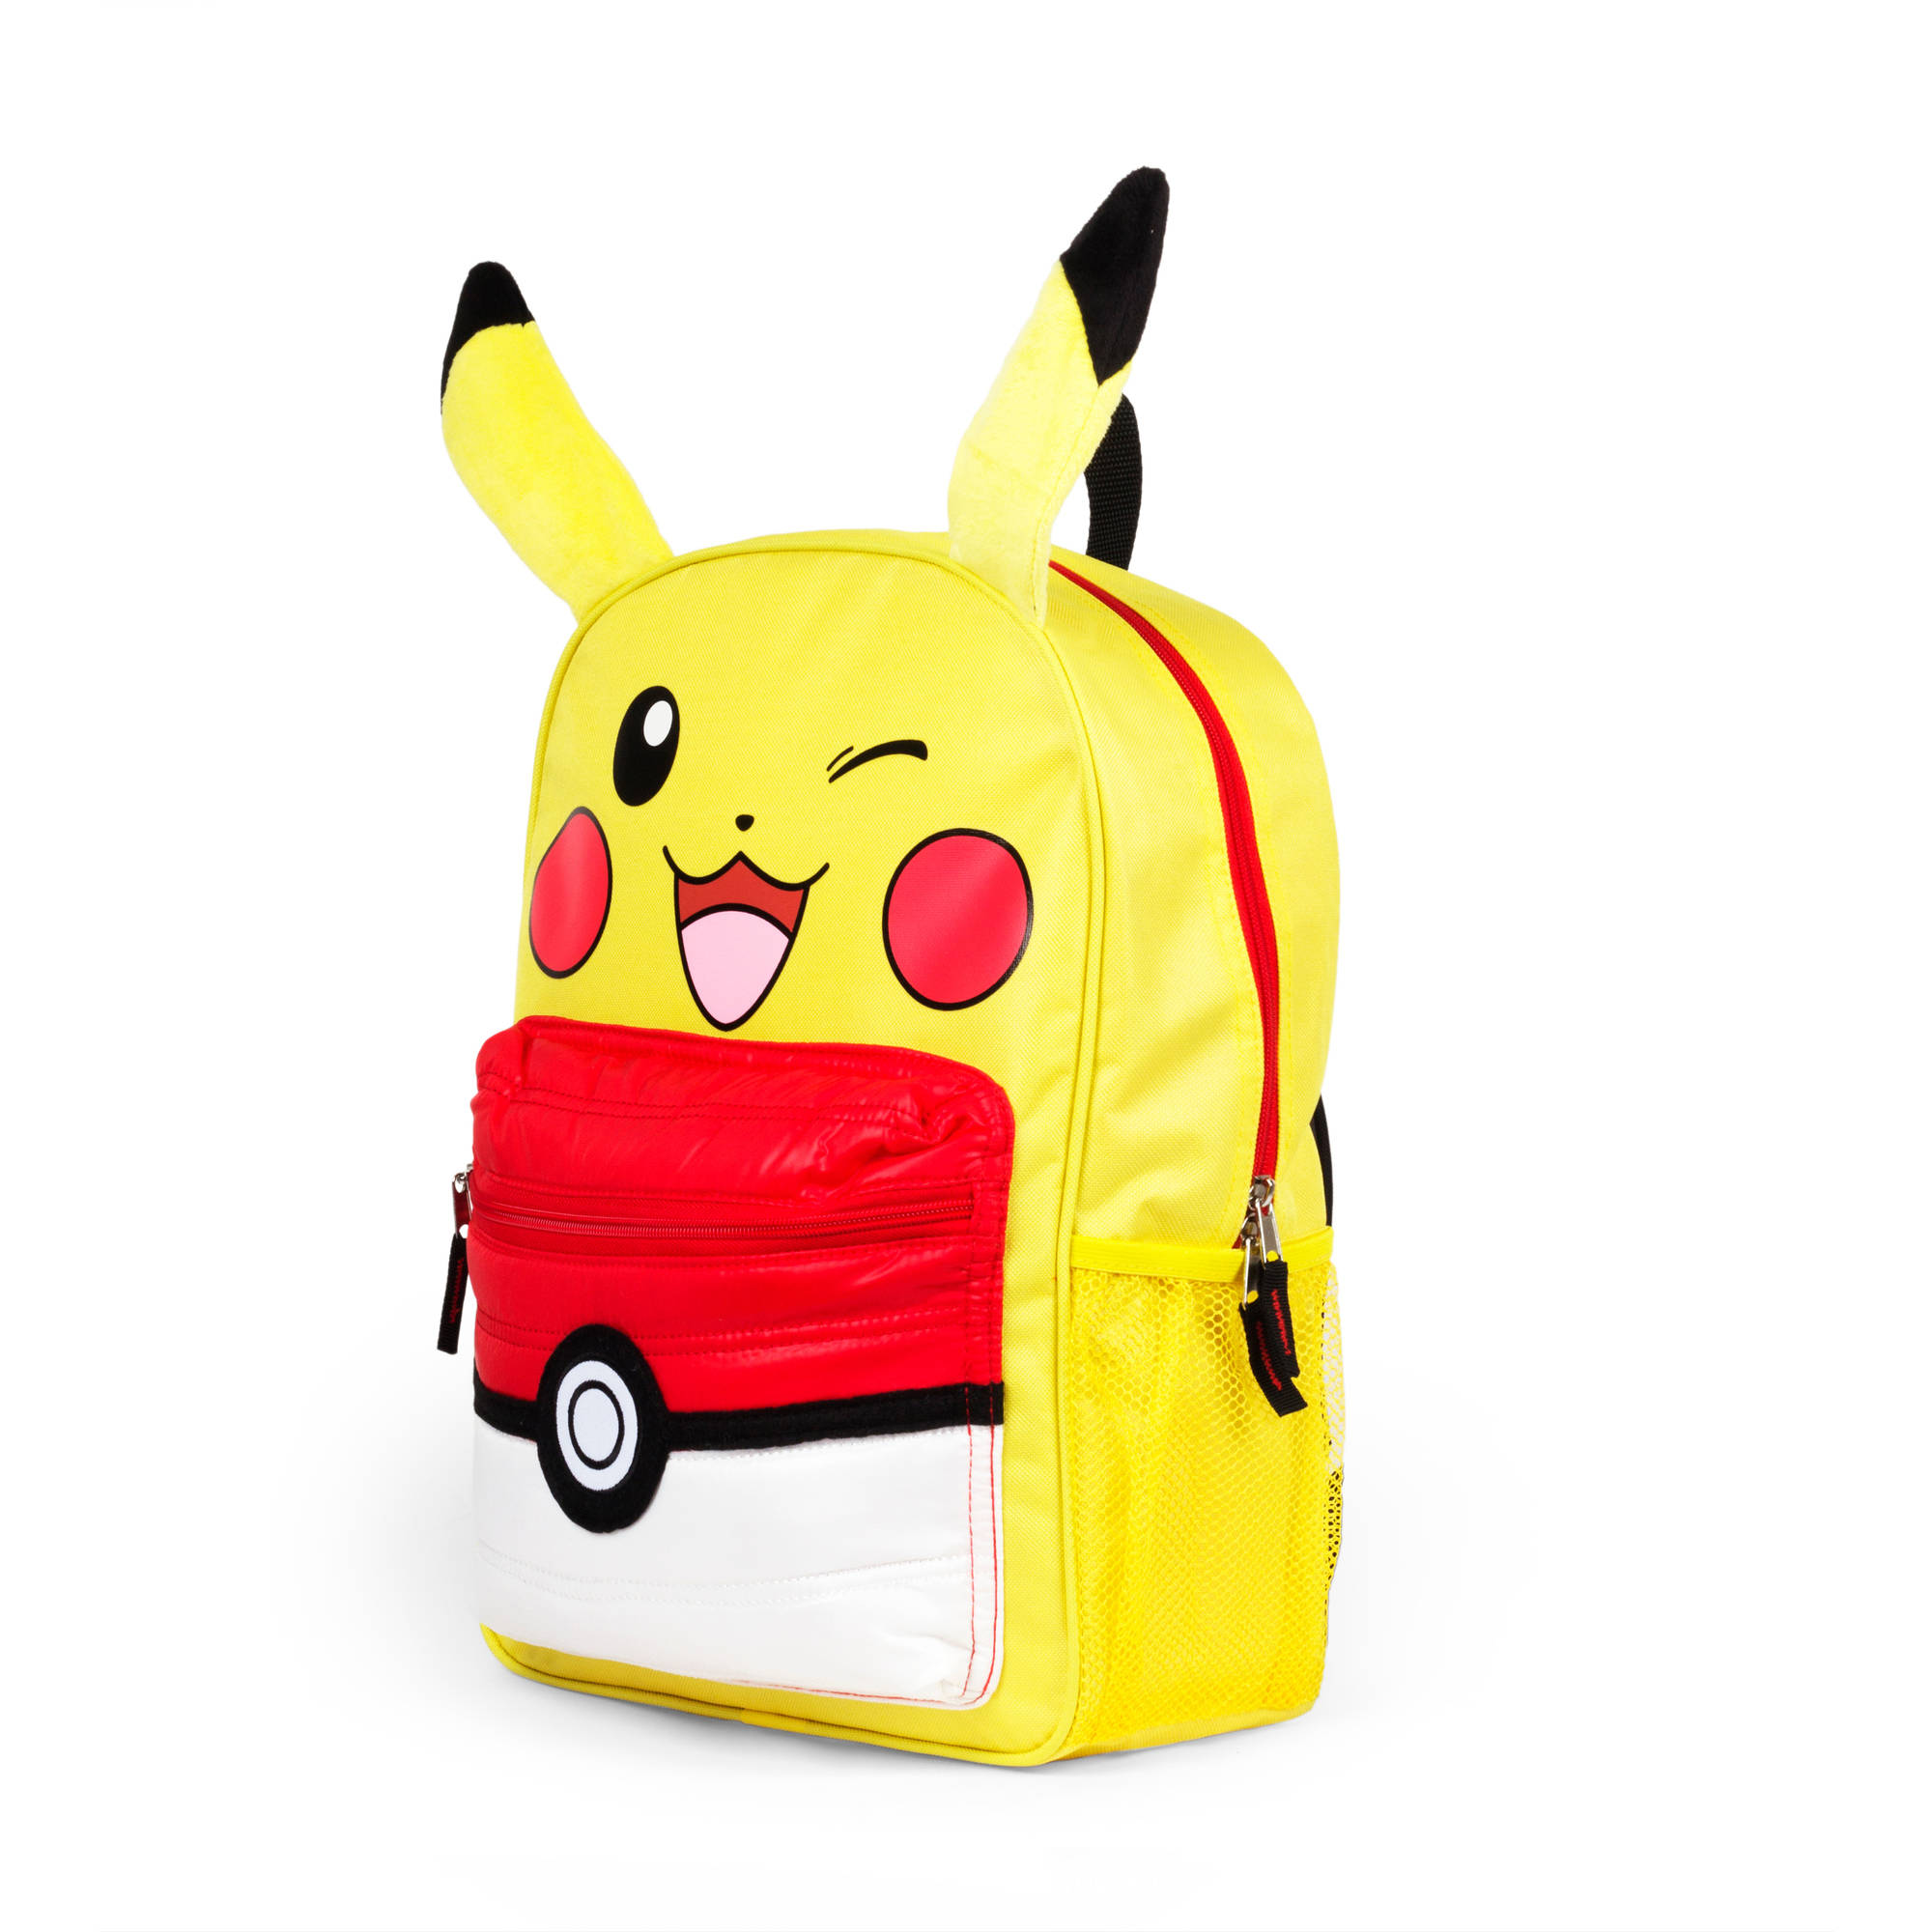 "Pokemon Pikachu 16"" Kids Licensed Backpack with Puffed Pocket"